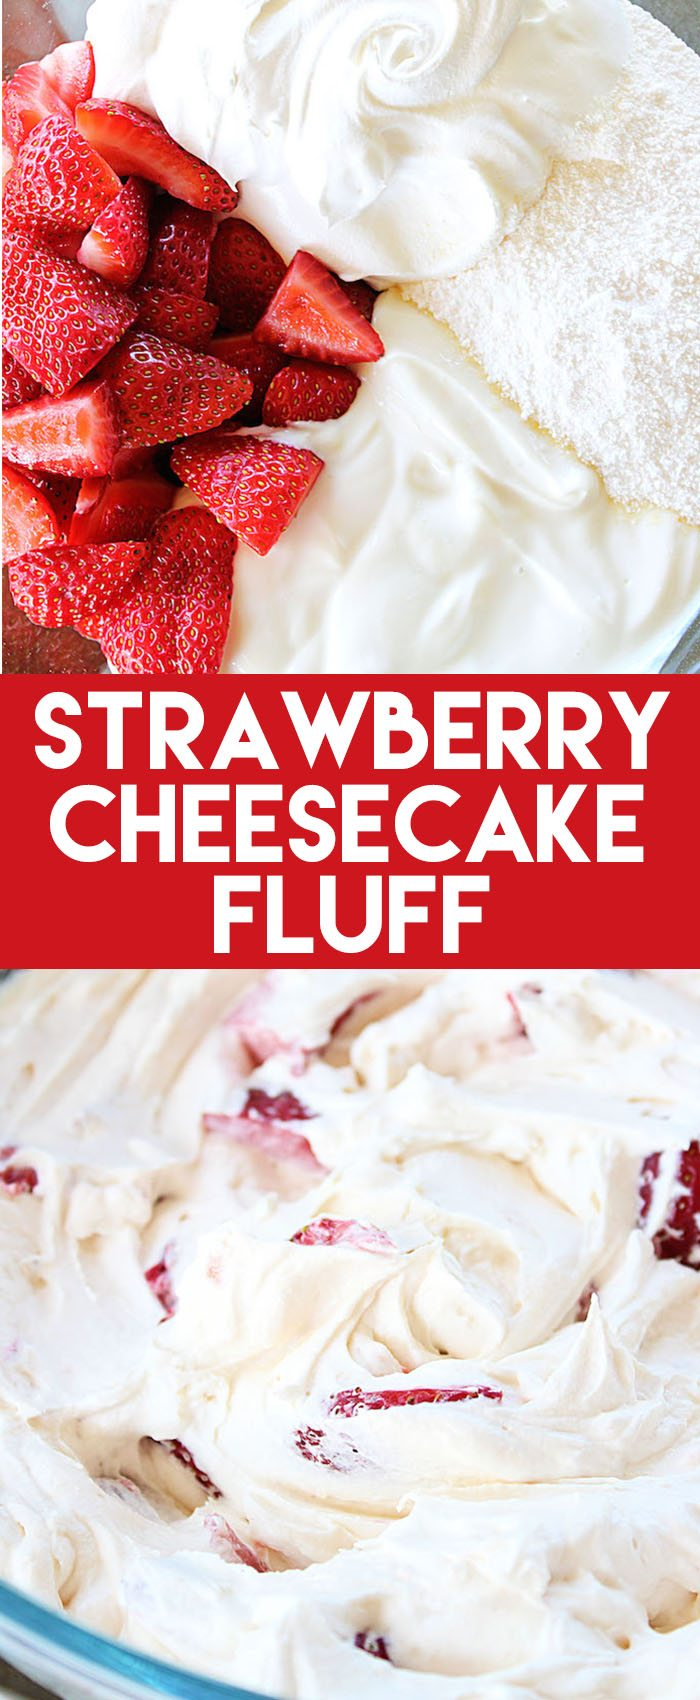 This Strawberry Cheesecake Fluff needs just four ingredients to make an awesome side or dessert recipe! It tastes so fresh and delicious.  #strawberry #cheesecake #side #dessert #sidedish #easysidedish